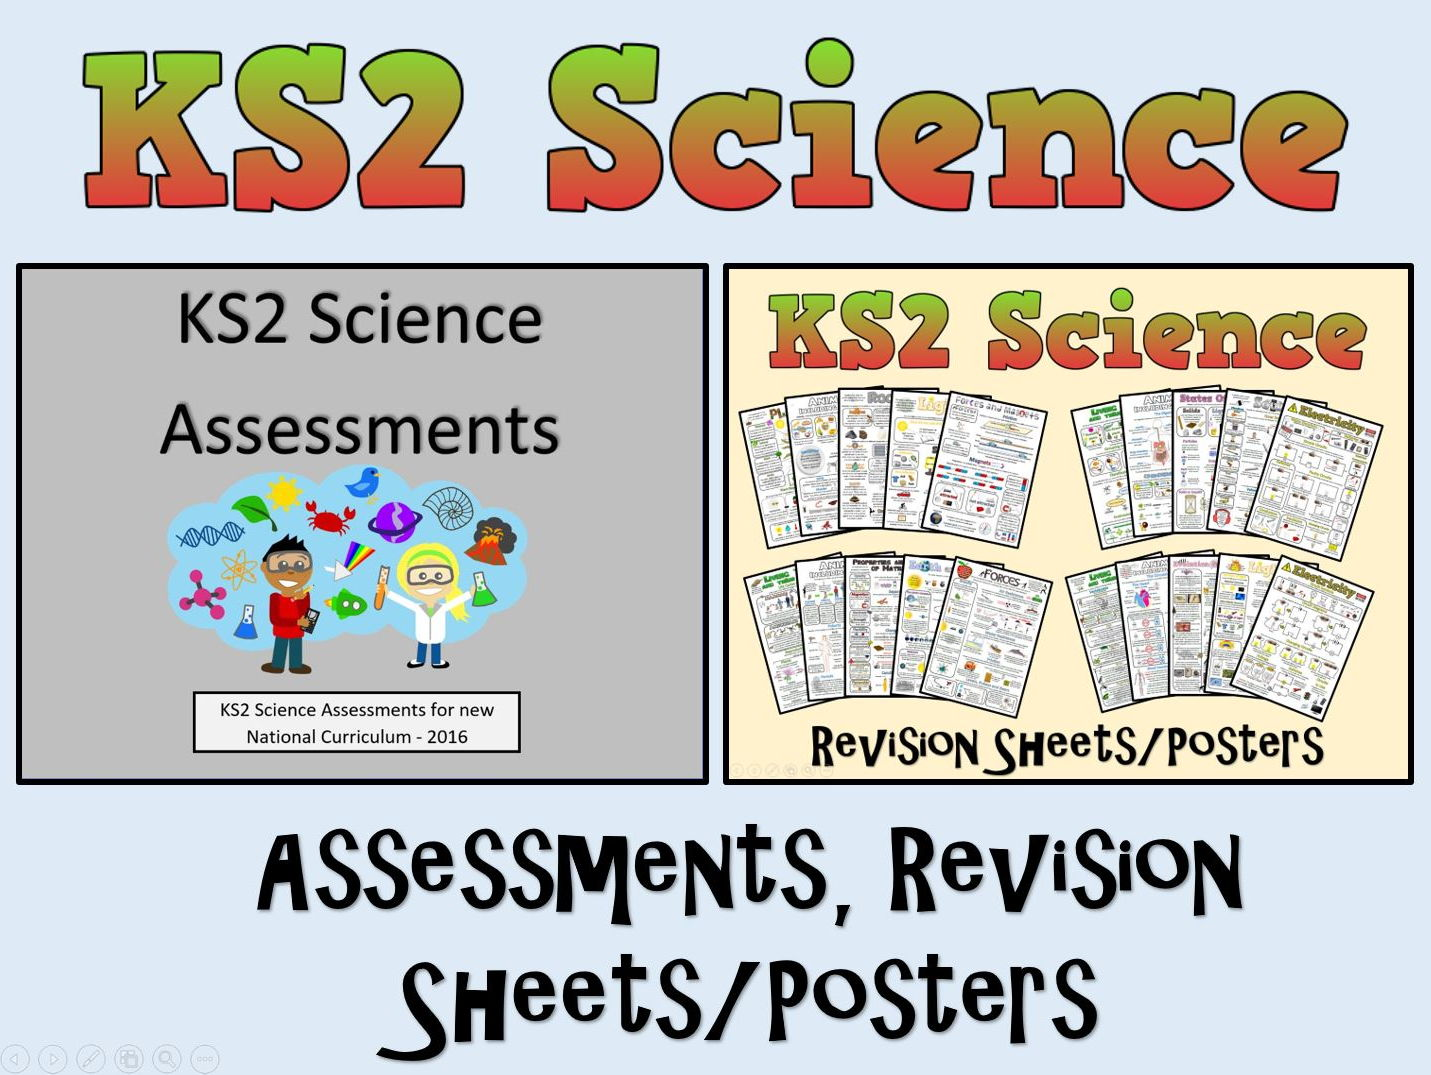 KS2 Science Assessments + Posters/Revision Sheets